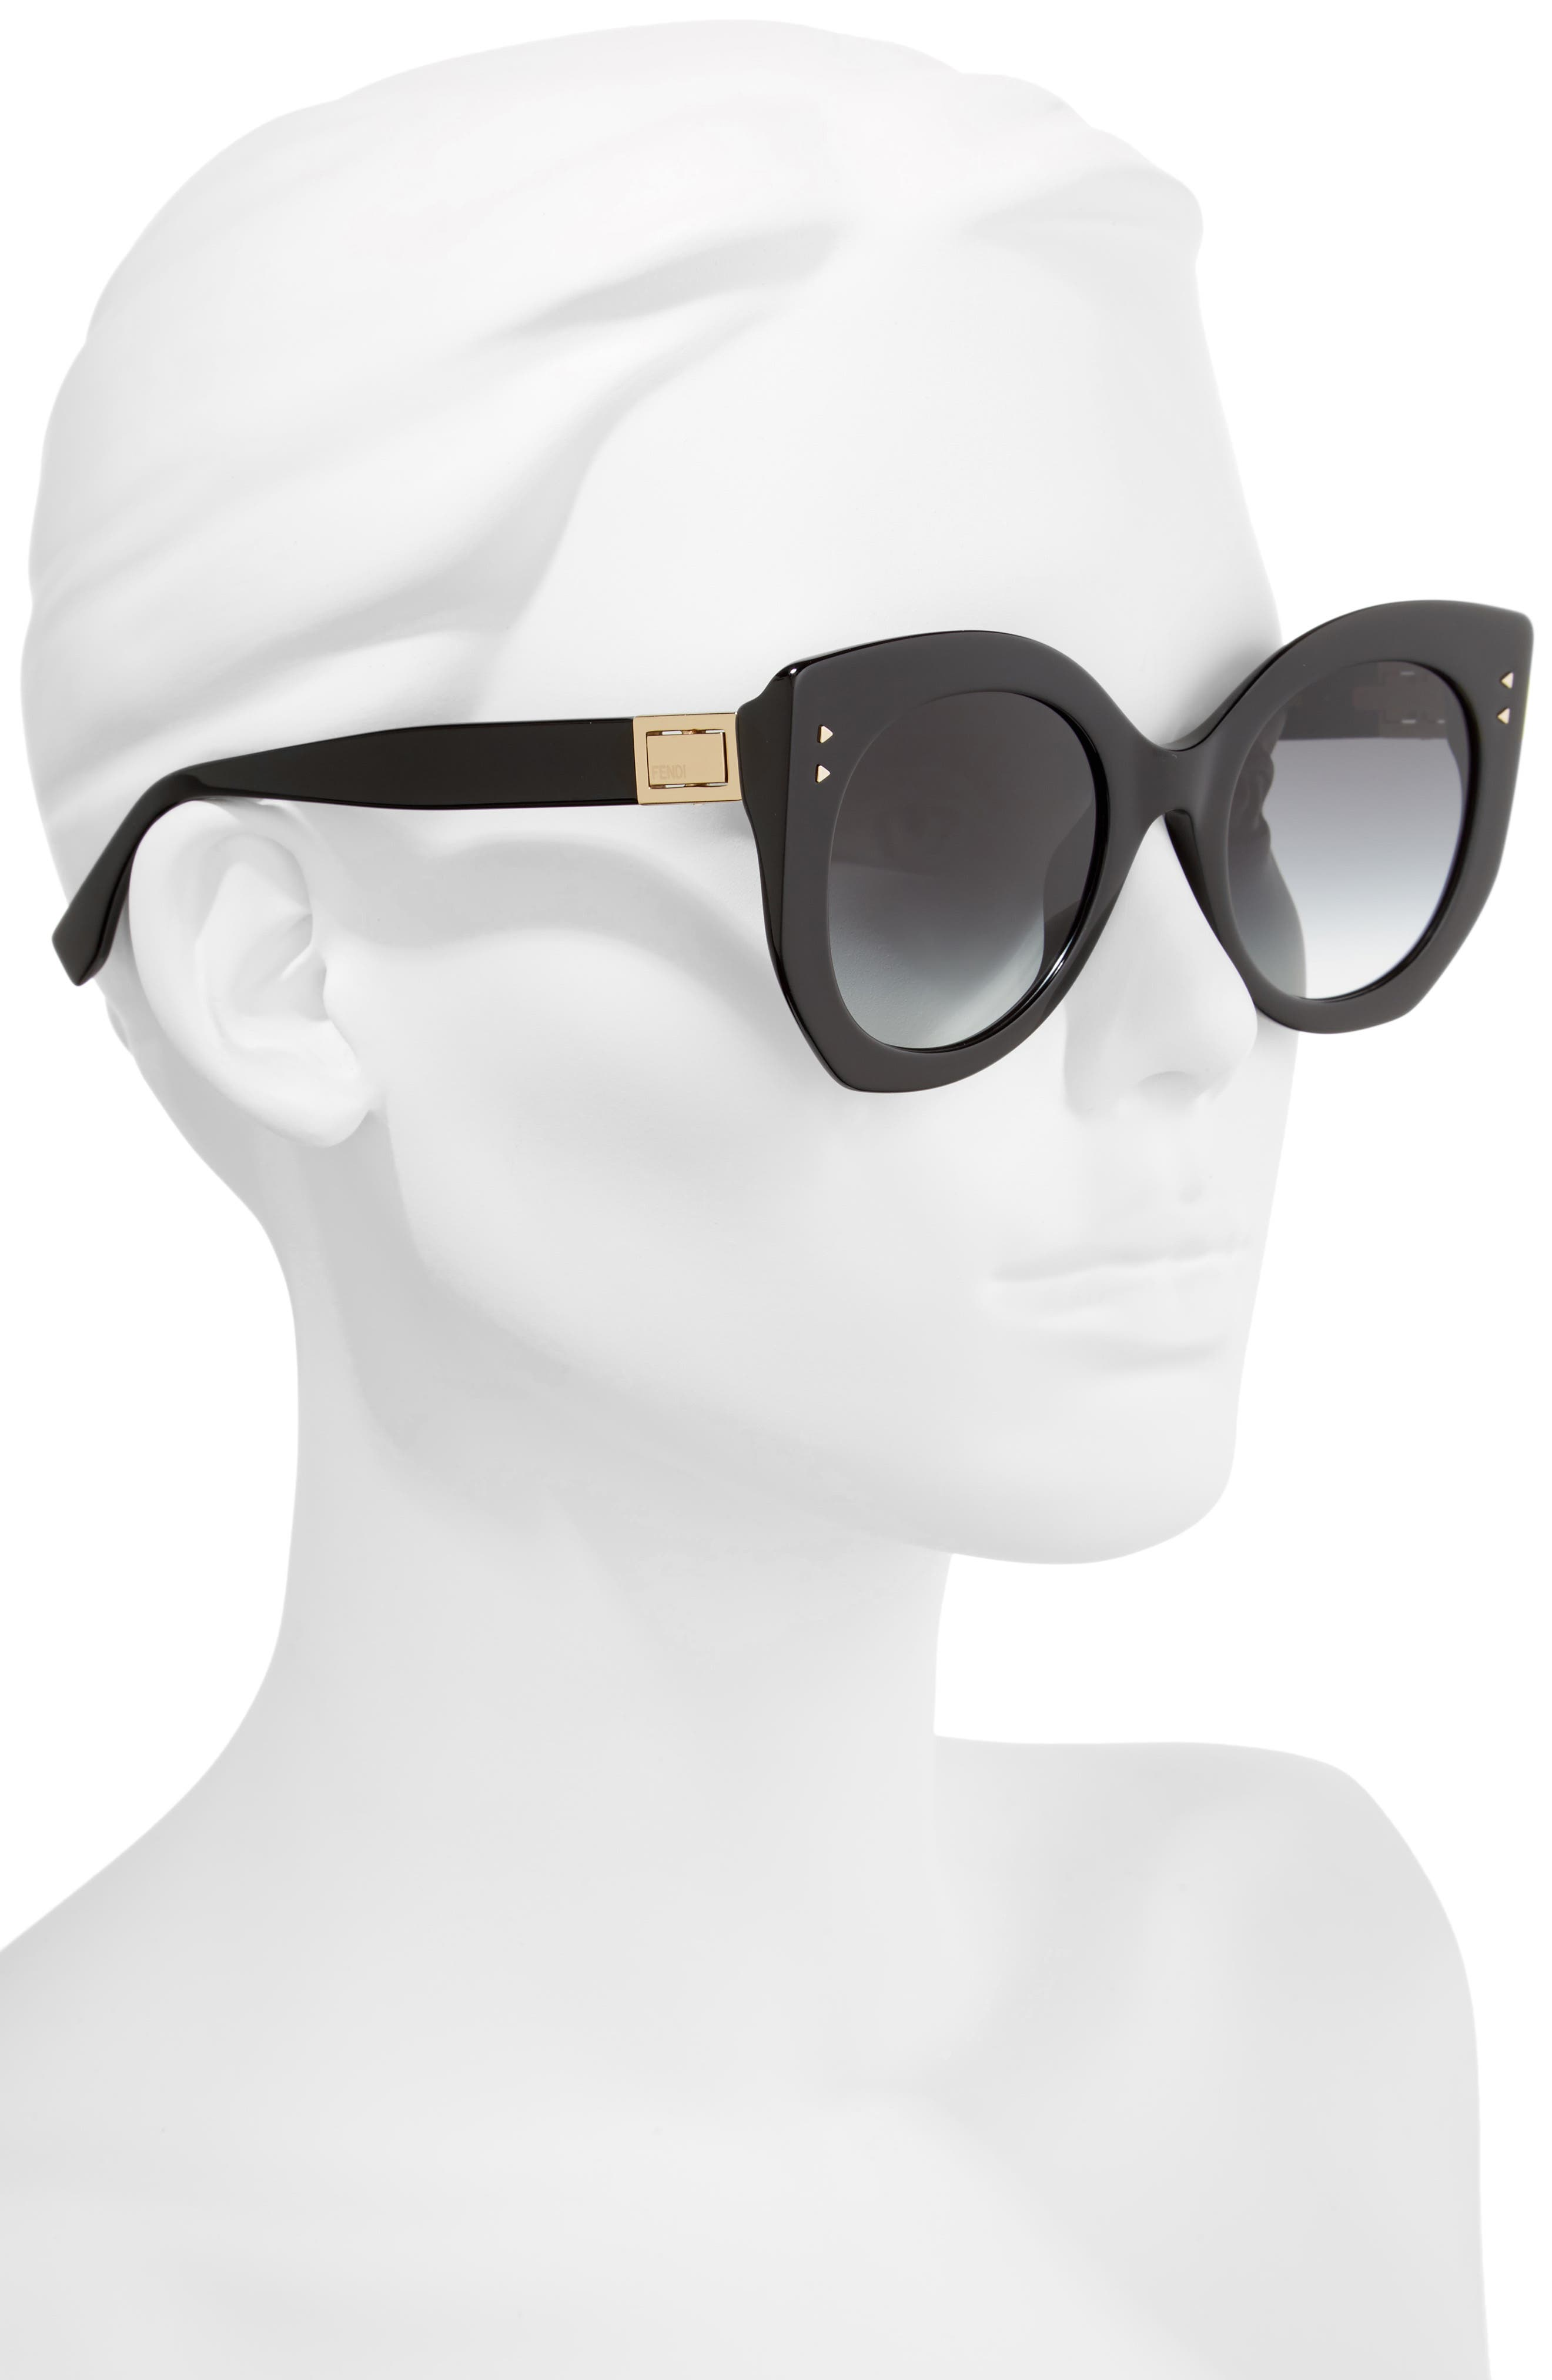 52mm Butterfly Sunglasses,                             Alternate thumbnail 2, color,                             001